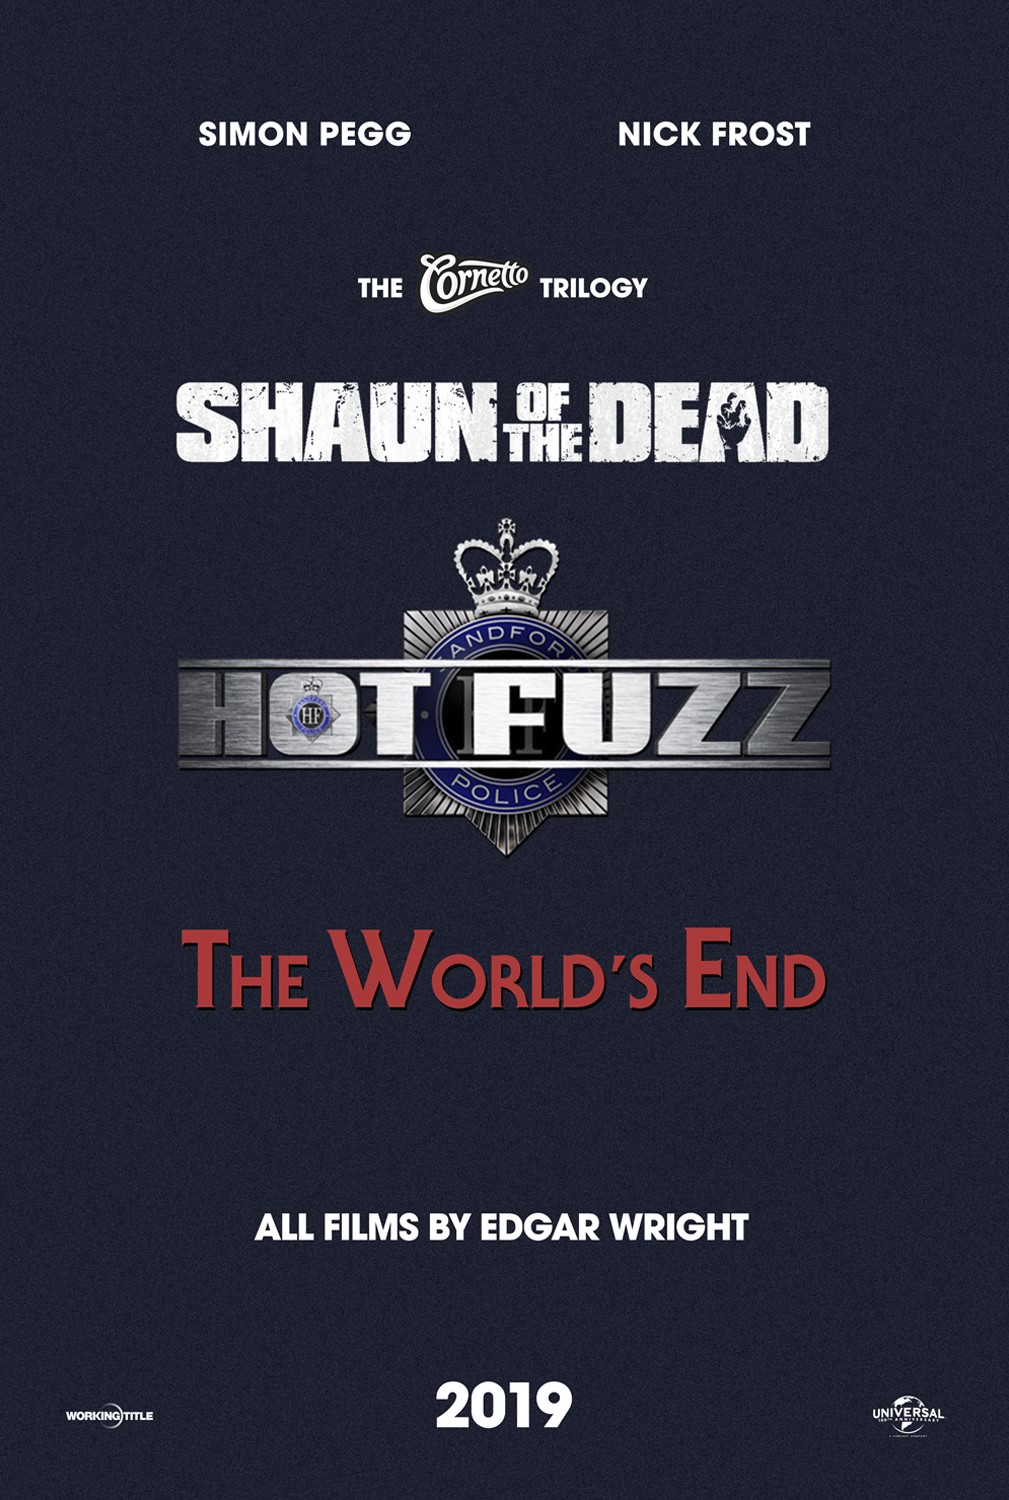 EDGAR WRIGHT - Cornetto Trilogy + Scott Pilgrim!